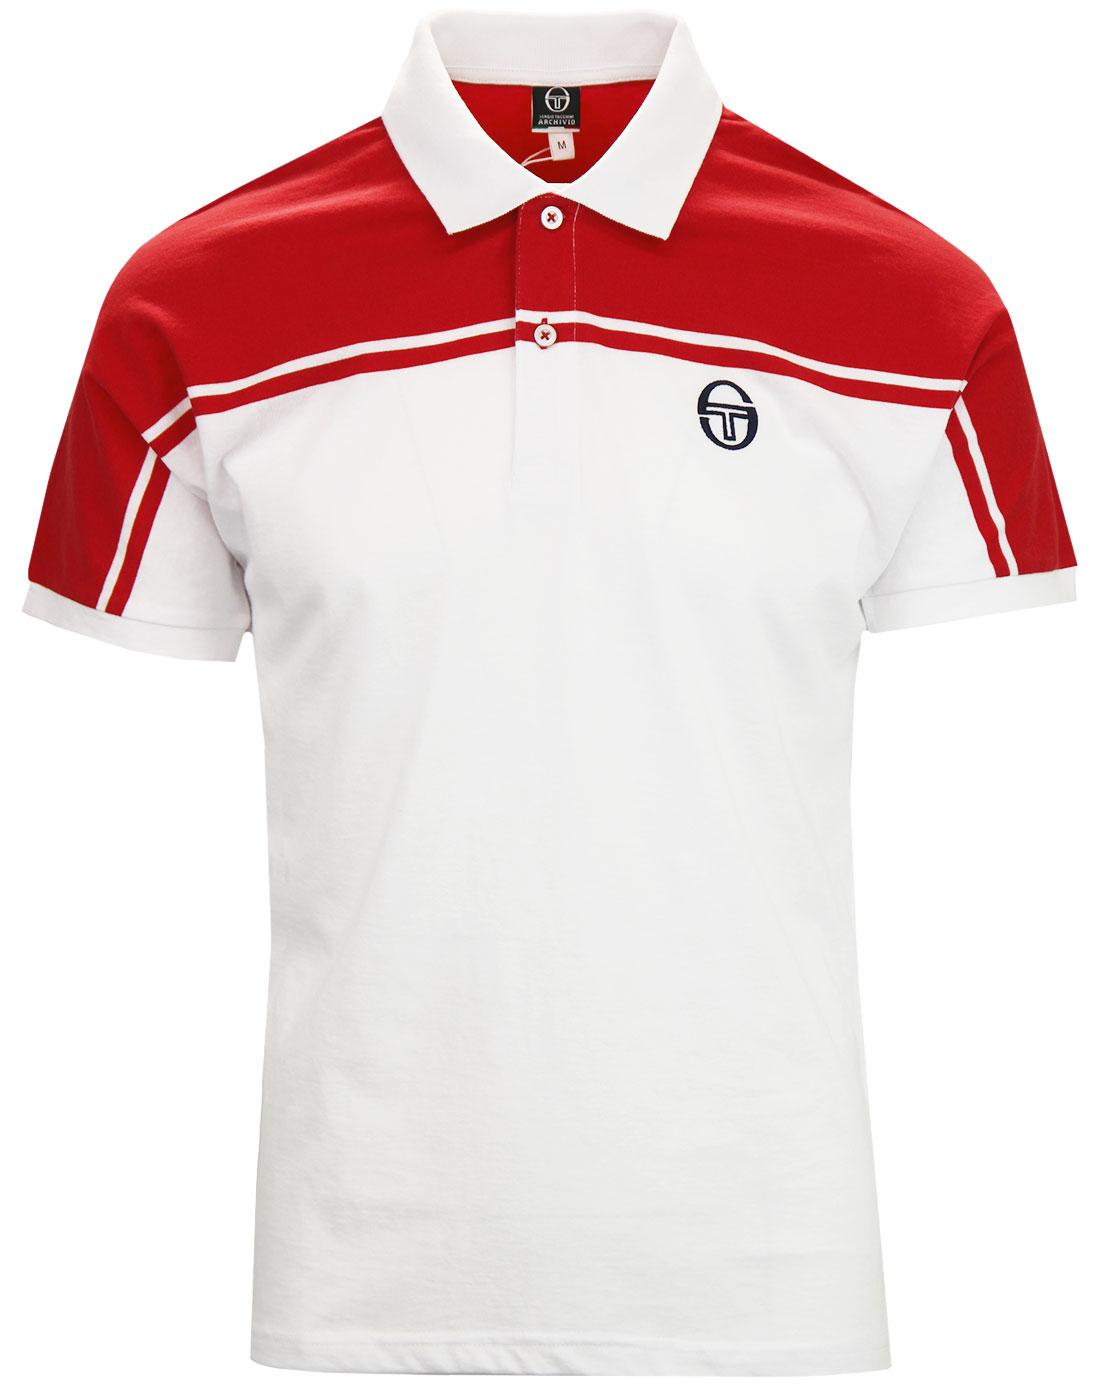 New Young Line SERGIO TACCHINI Retro 80s Polo RED